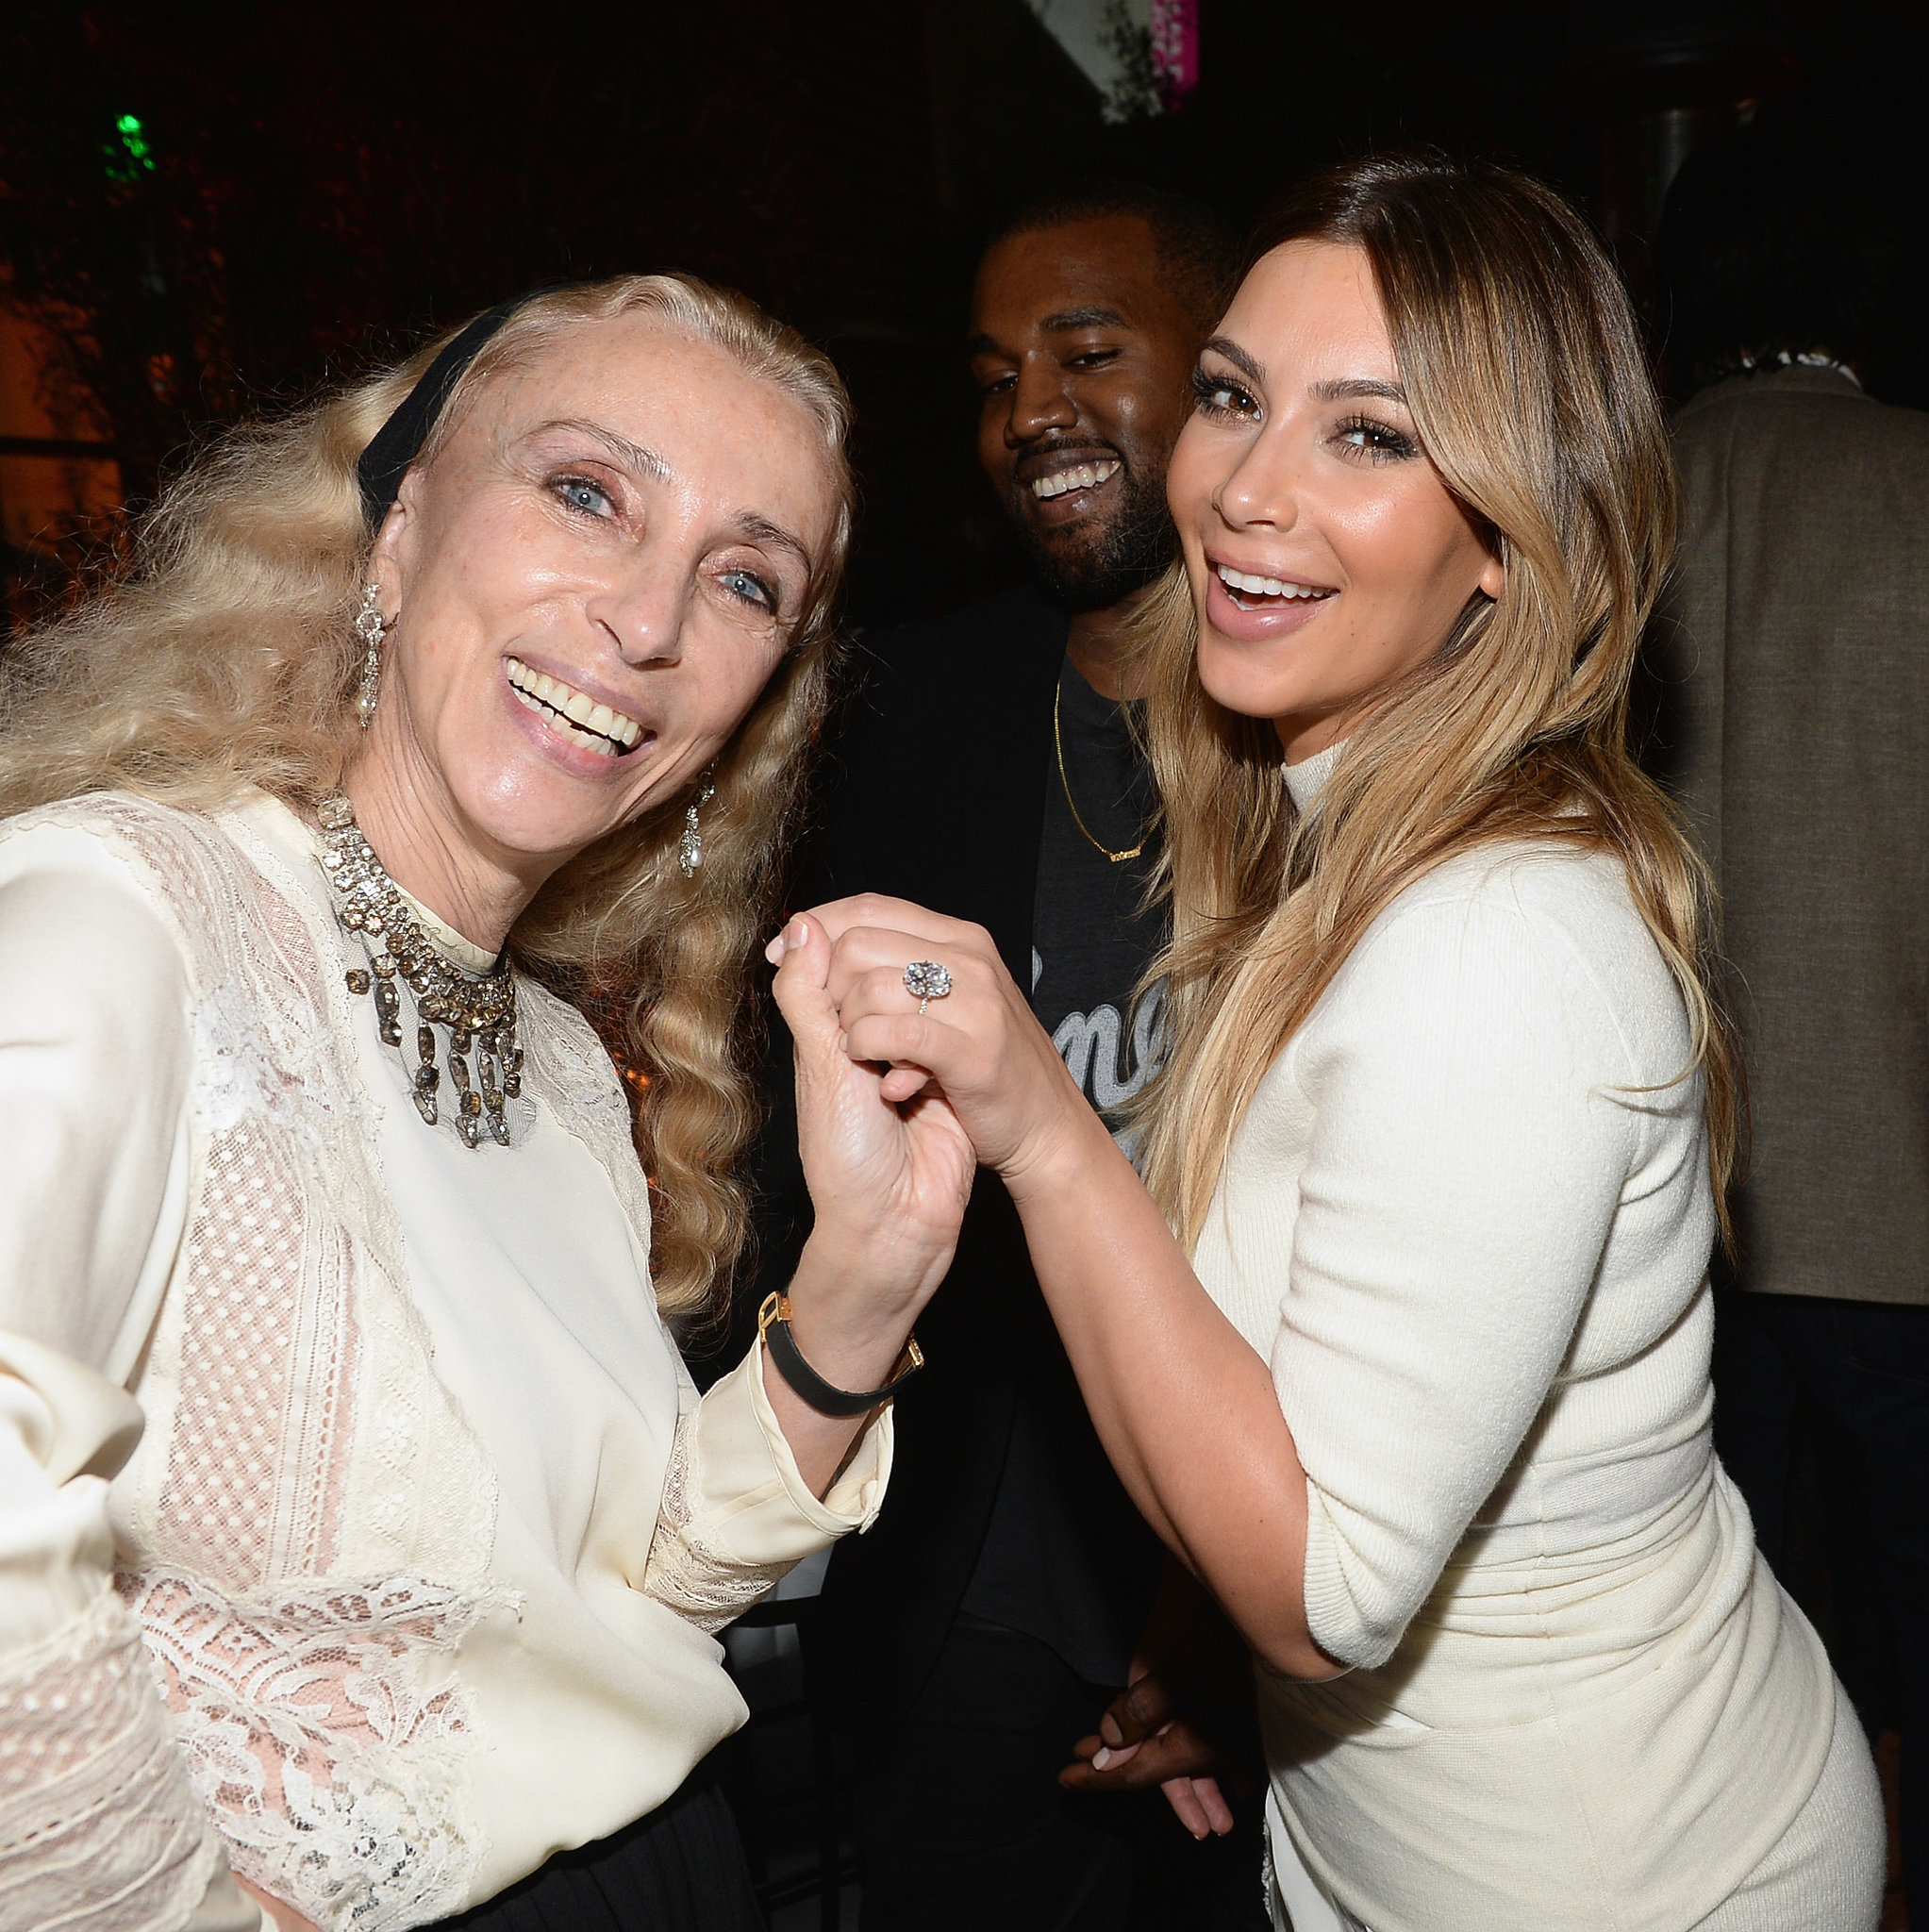 Kim Kardashian showed her ring to Franca Sozzani while Kanye West looked on.